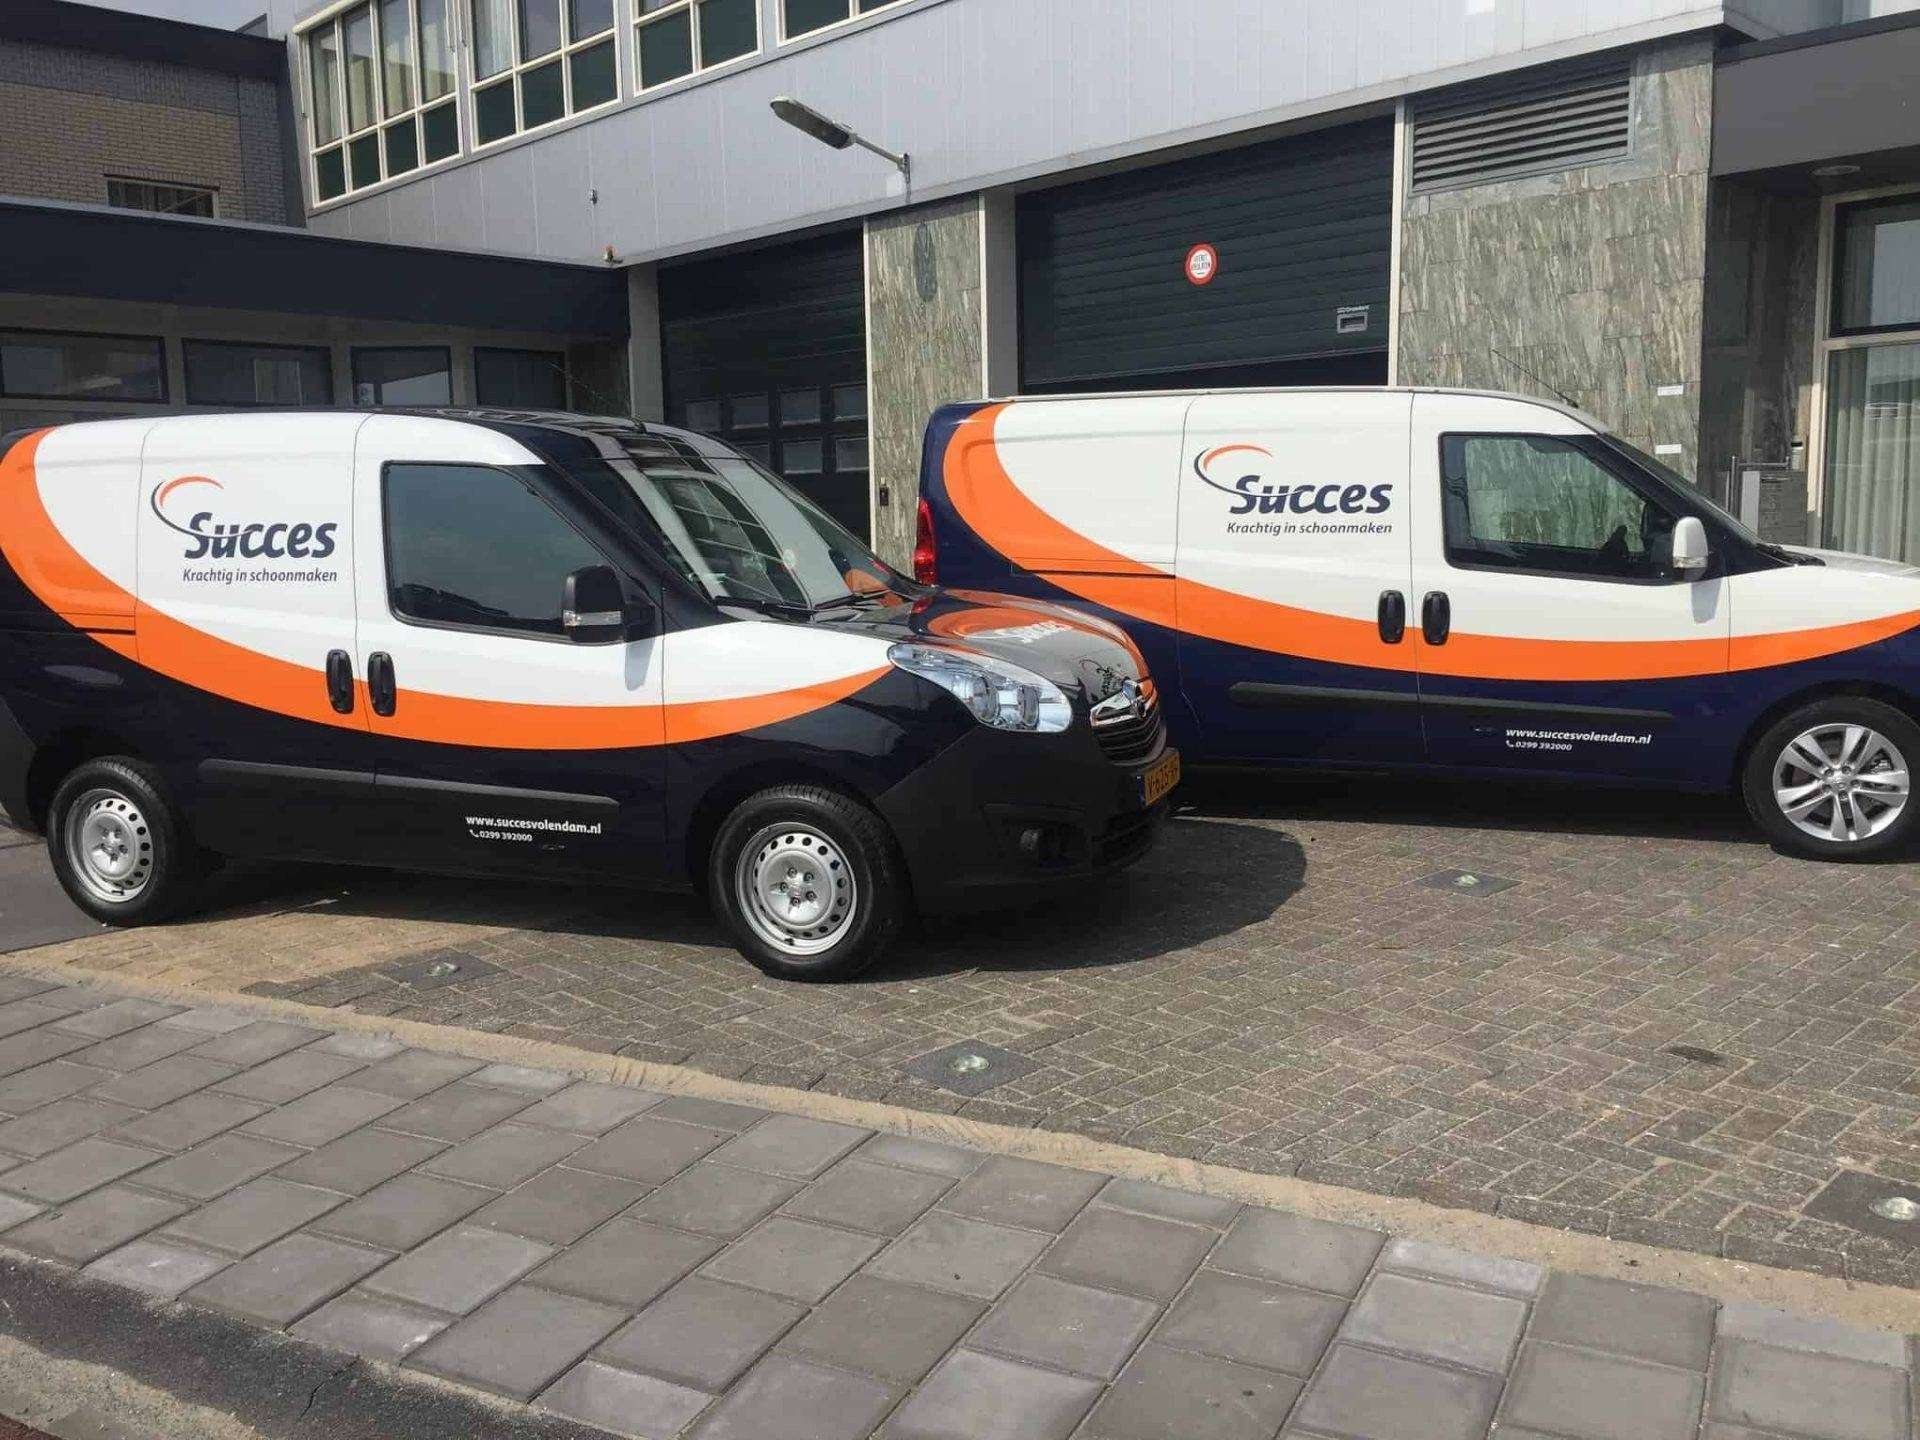 Carwrapping wagenpark Succes Schoonmaak